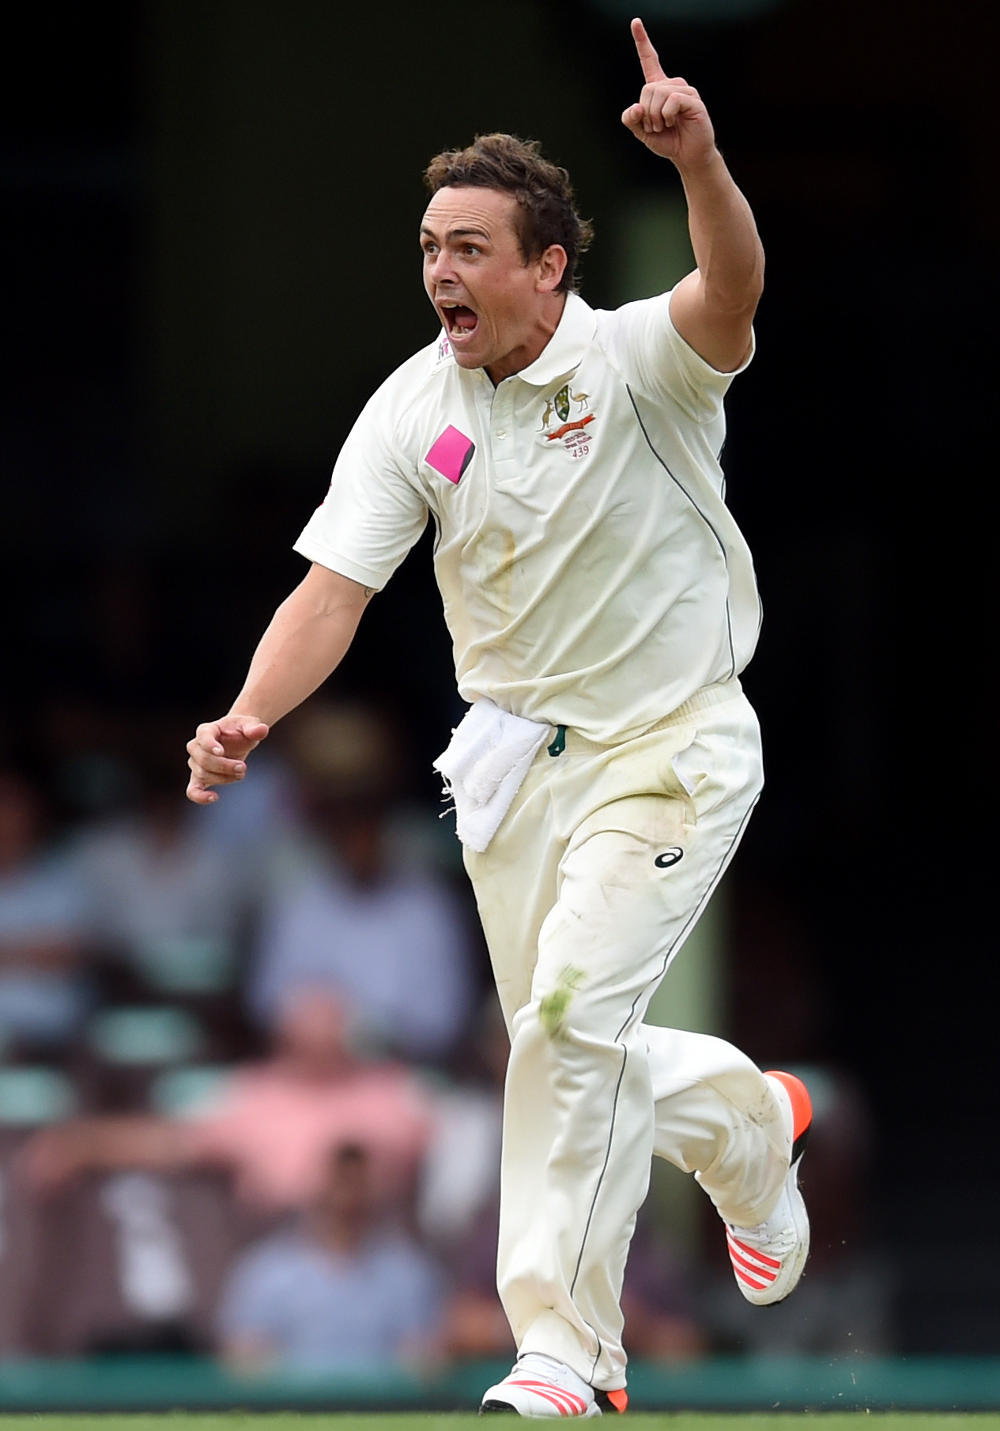 Stephen O'Keefe celebrates Australia